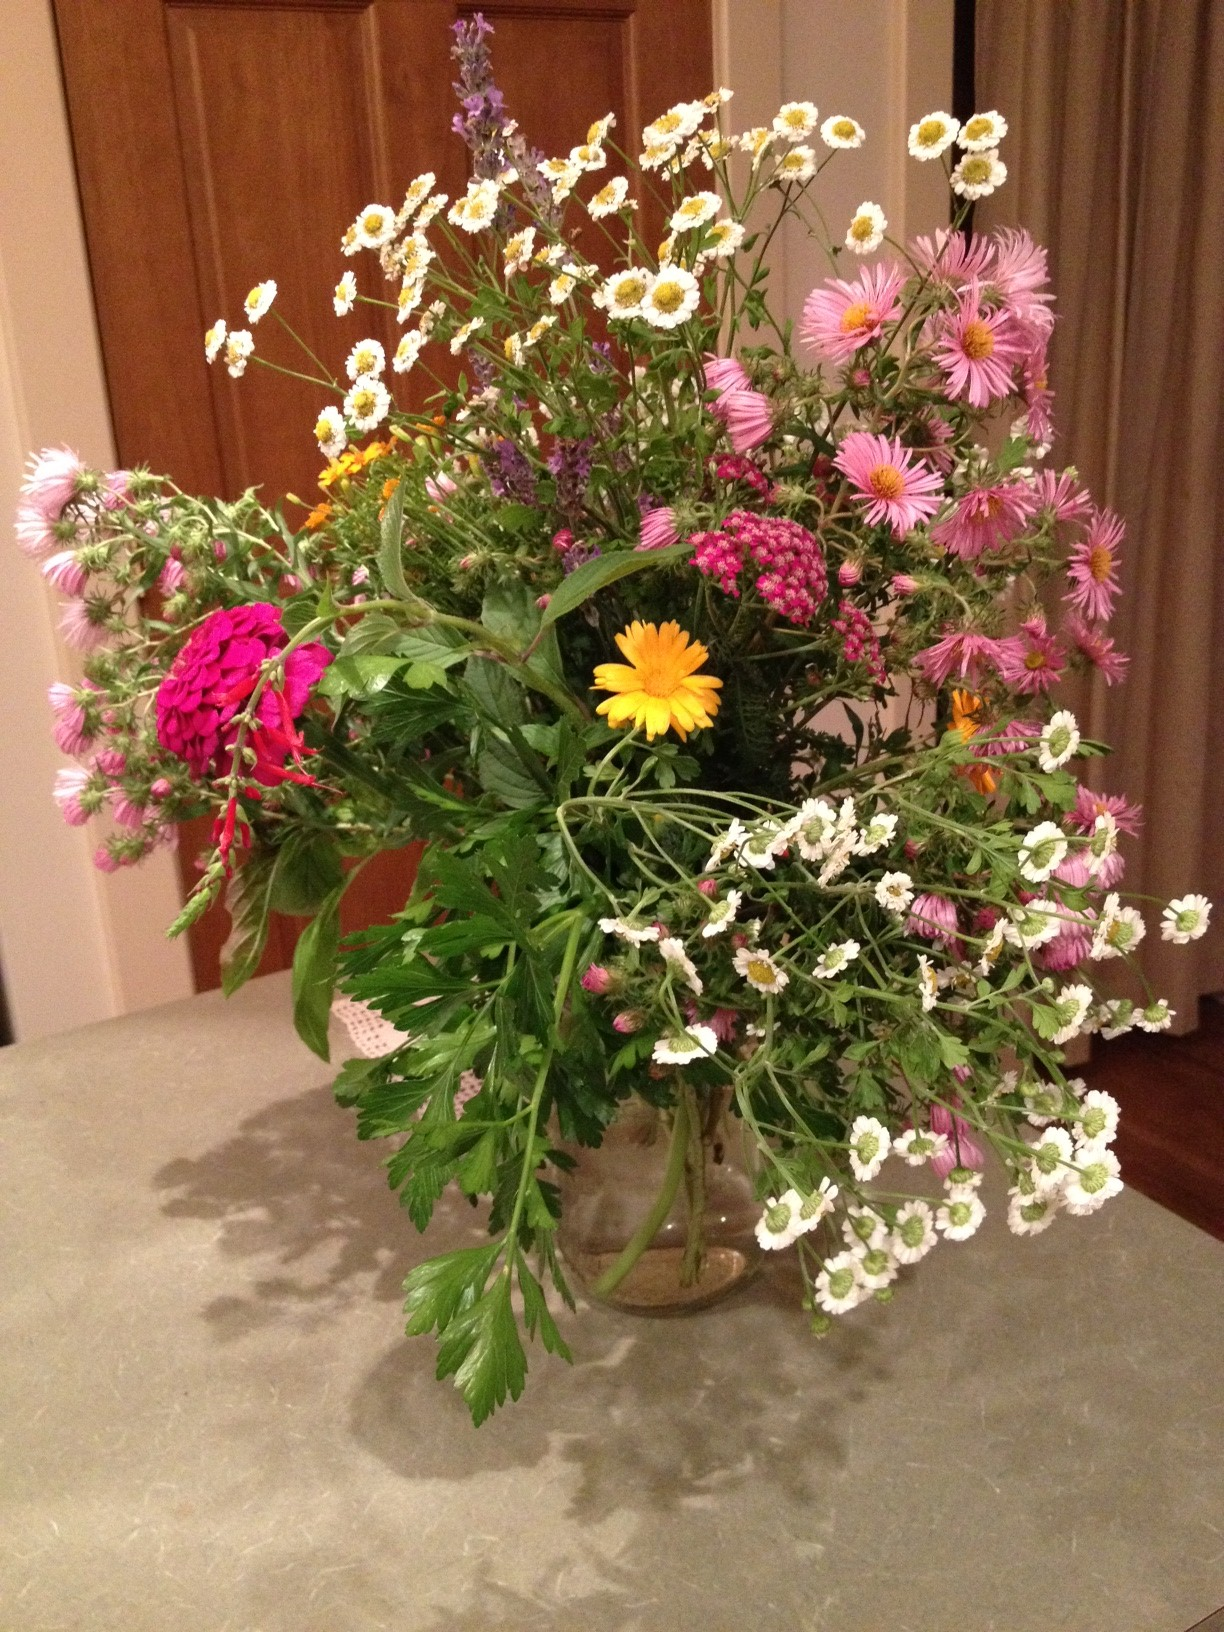 Finding beauty laura bruno 39 s blog for A lot of different flowers make a bouquet